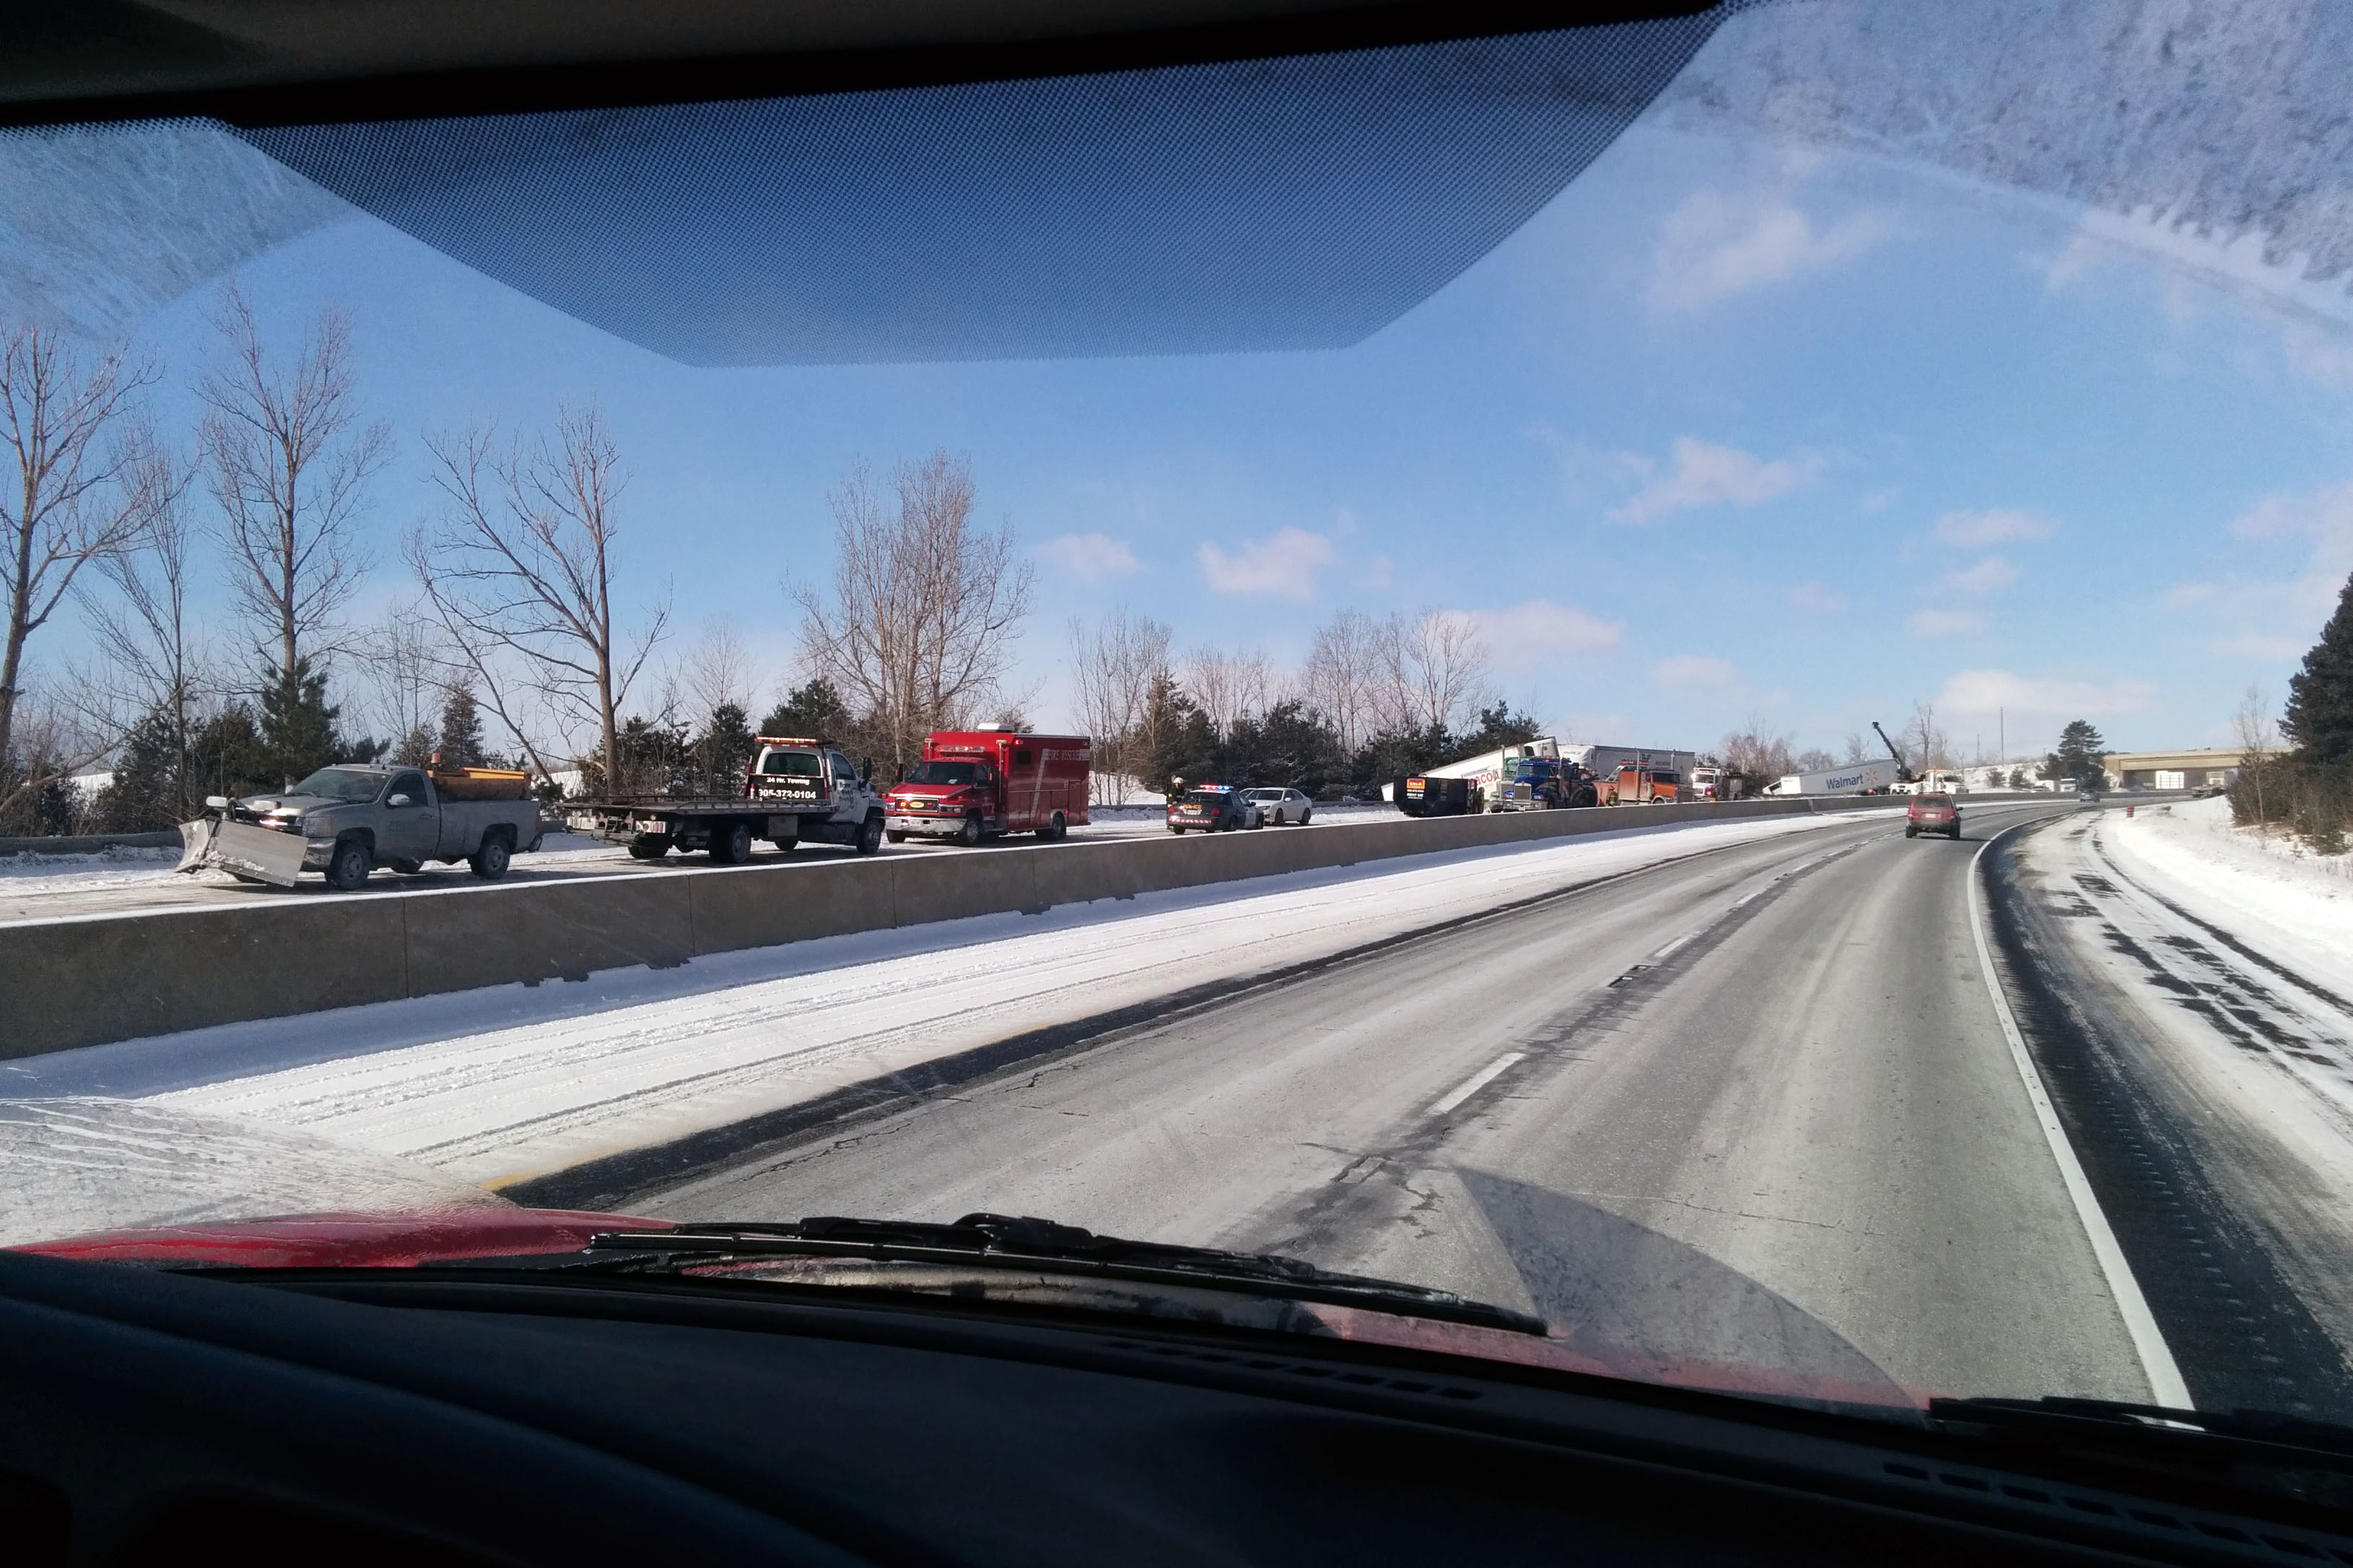 Photo of Highway 401 in Cobourg where a pileup of tractor-trailers occurred was submitted Wednesday by viewer Kevin Tencarre.